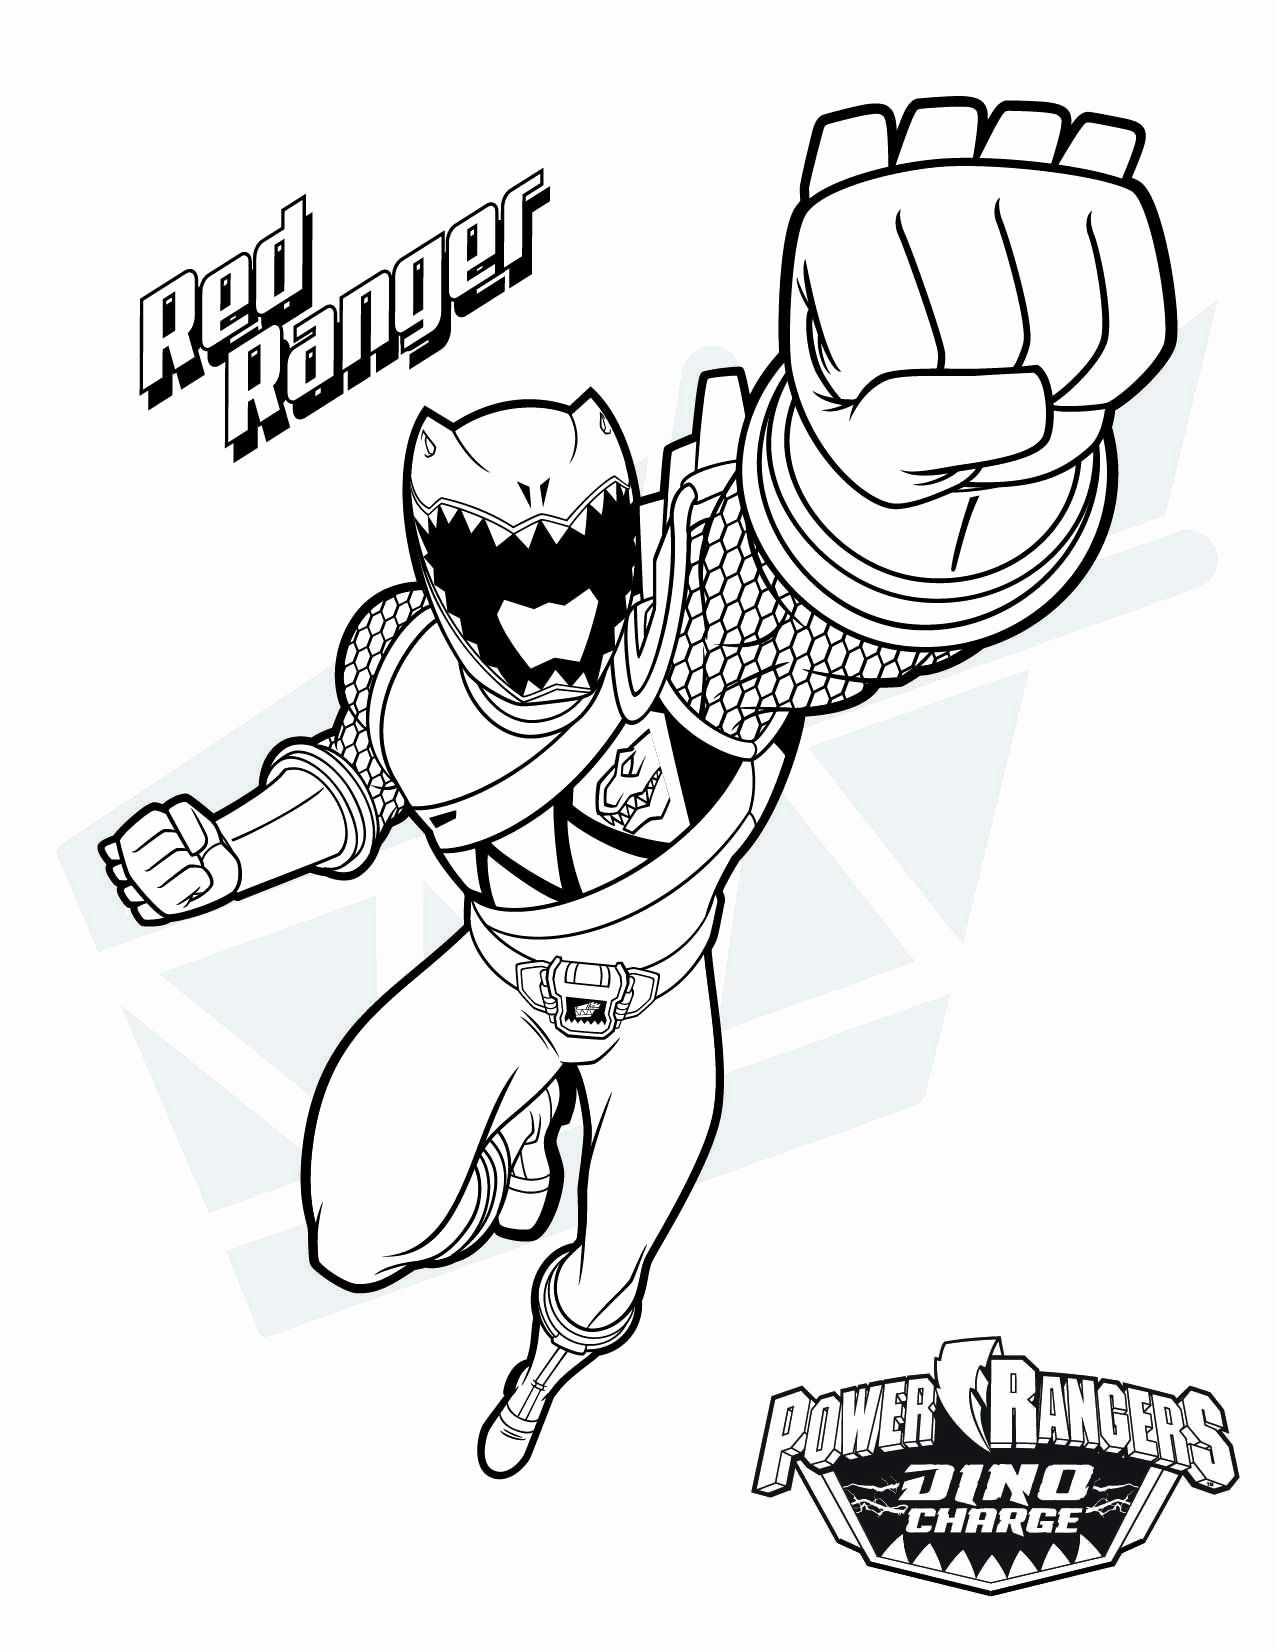 Power Rangers Coloring Book Best Of Pin By Power Rangers On Power Rangers Coloring P Power Rangers Coloring Pages Halloween Coloring Pages Super Coloring Pages